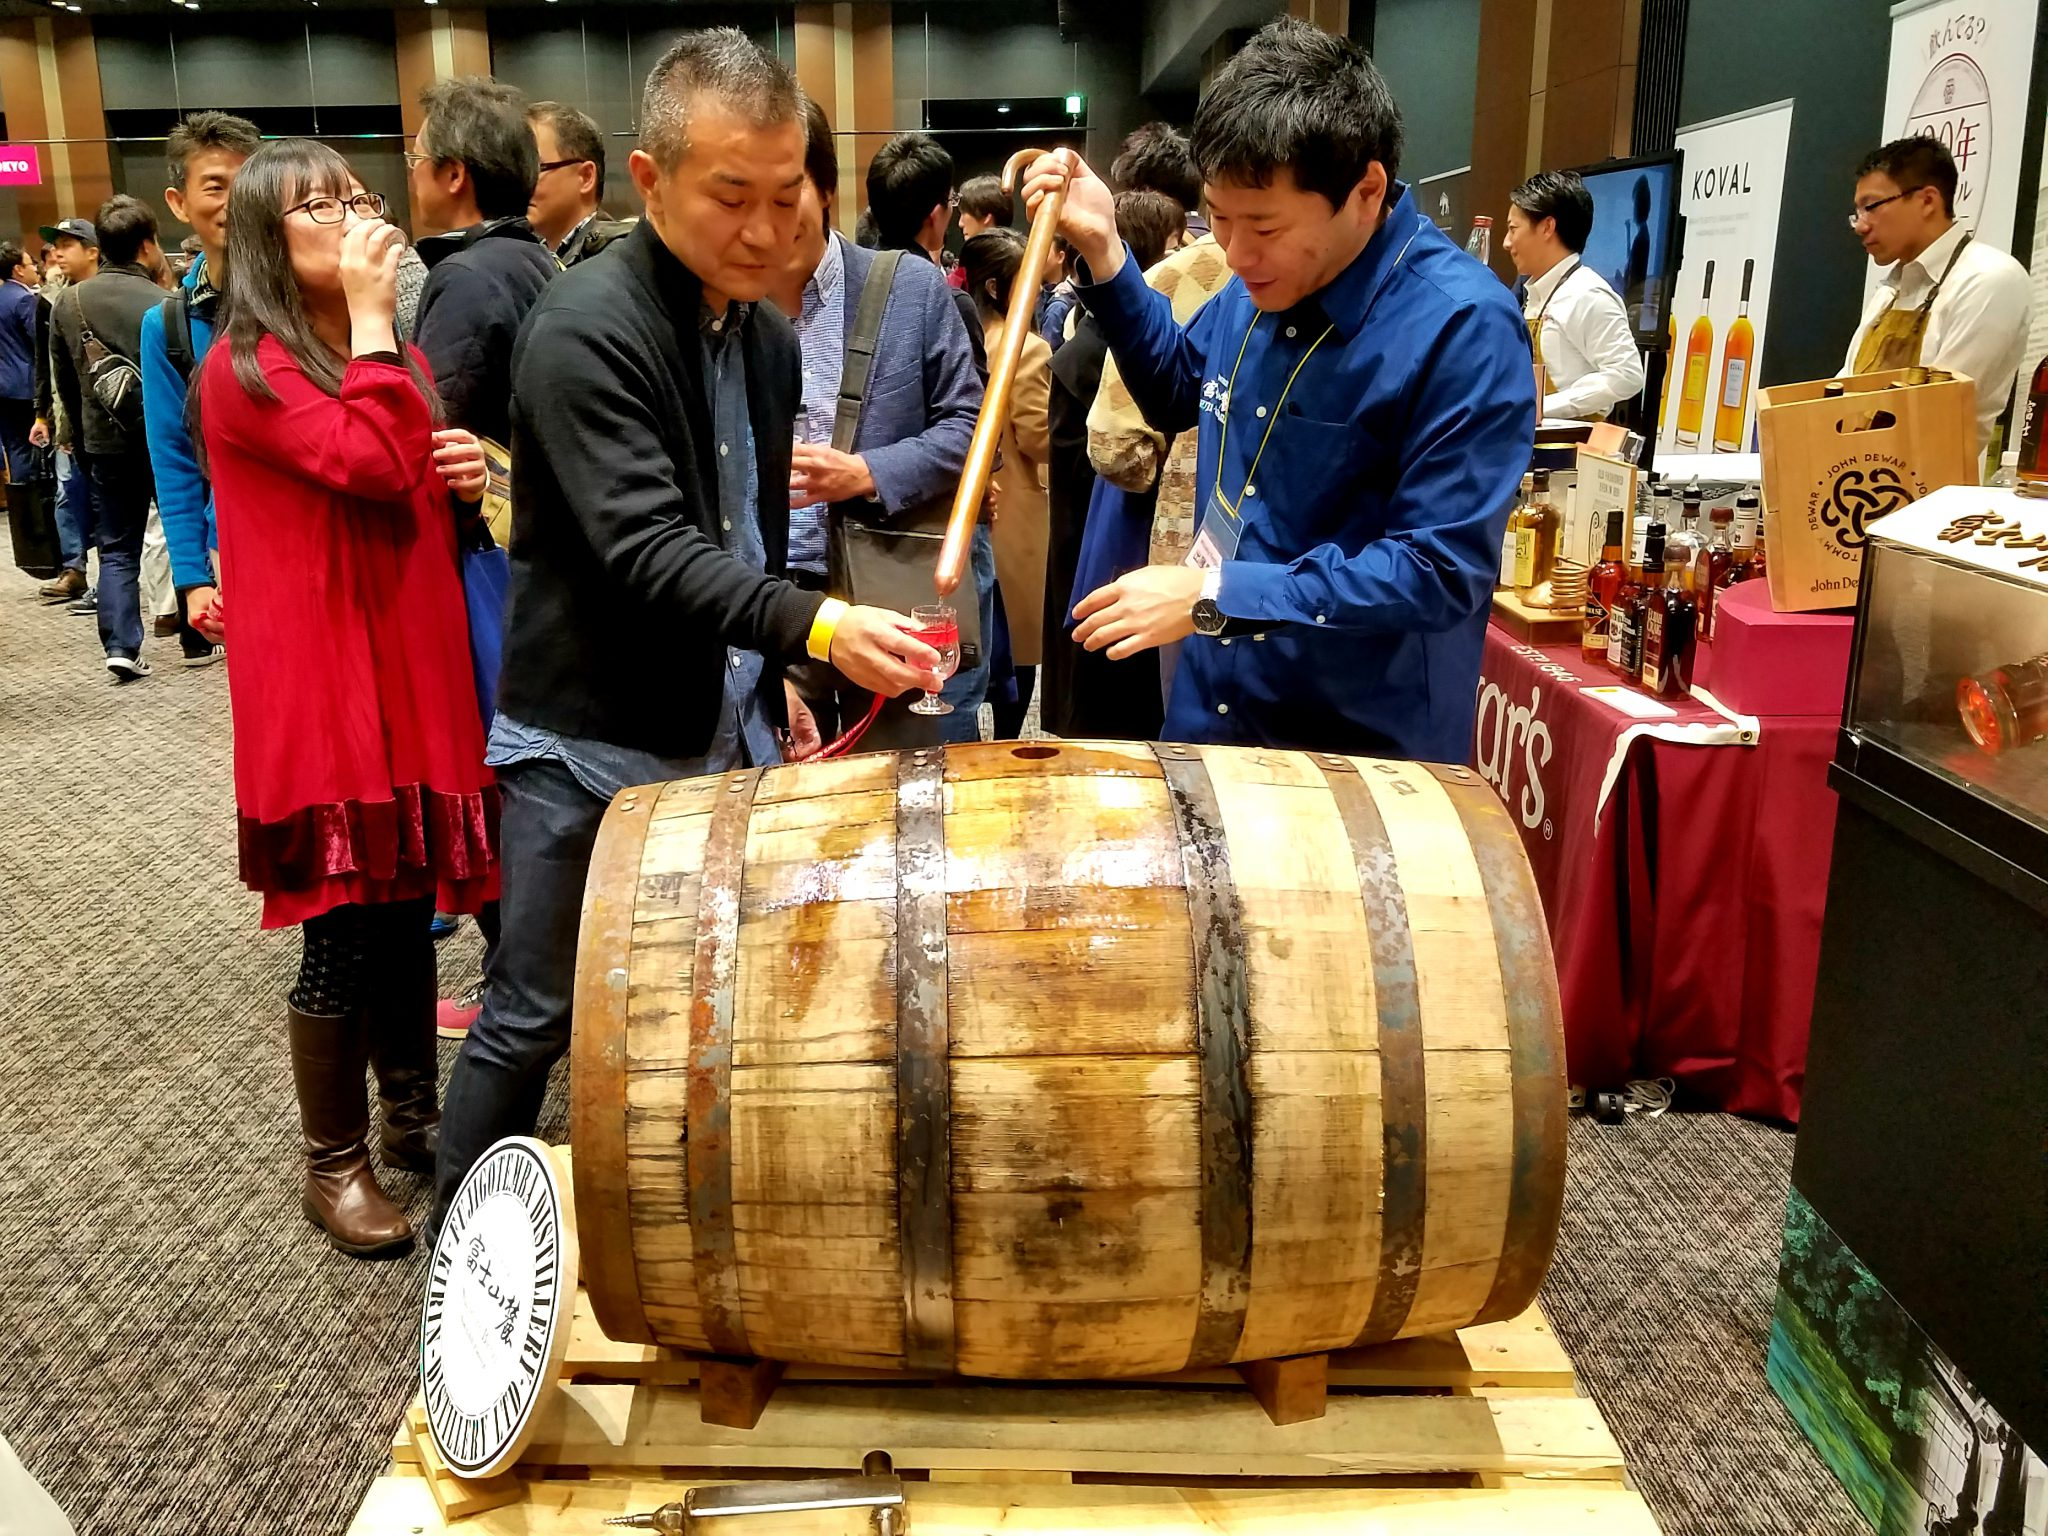 Japanese whisky from the barrel: Kirin Fuji-Gotemba Whisky From the Barrel at Tokyo Whisky Festival 2018